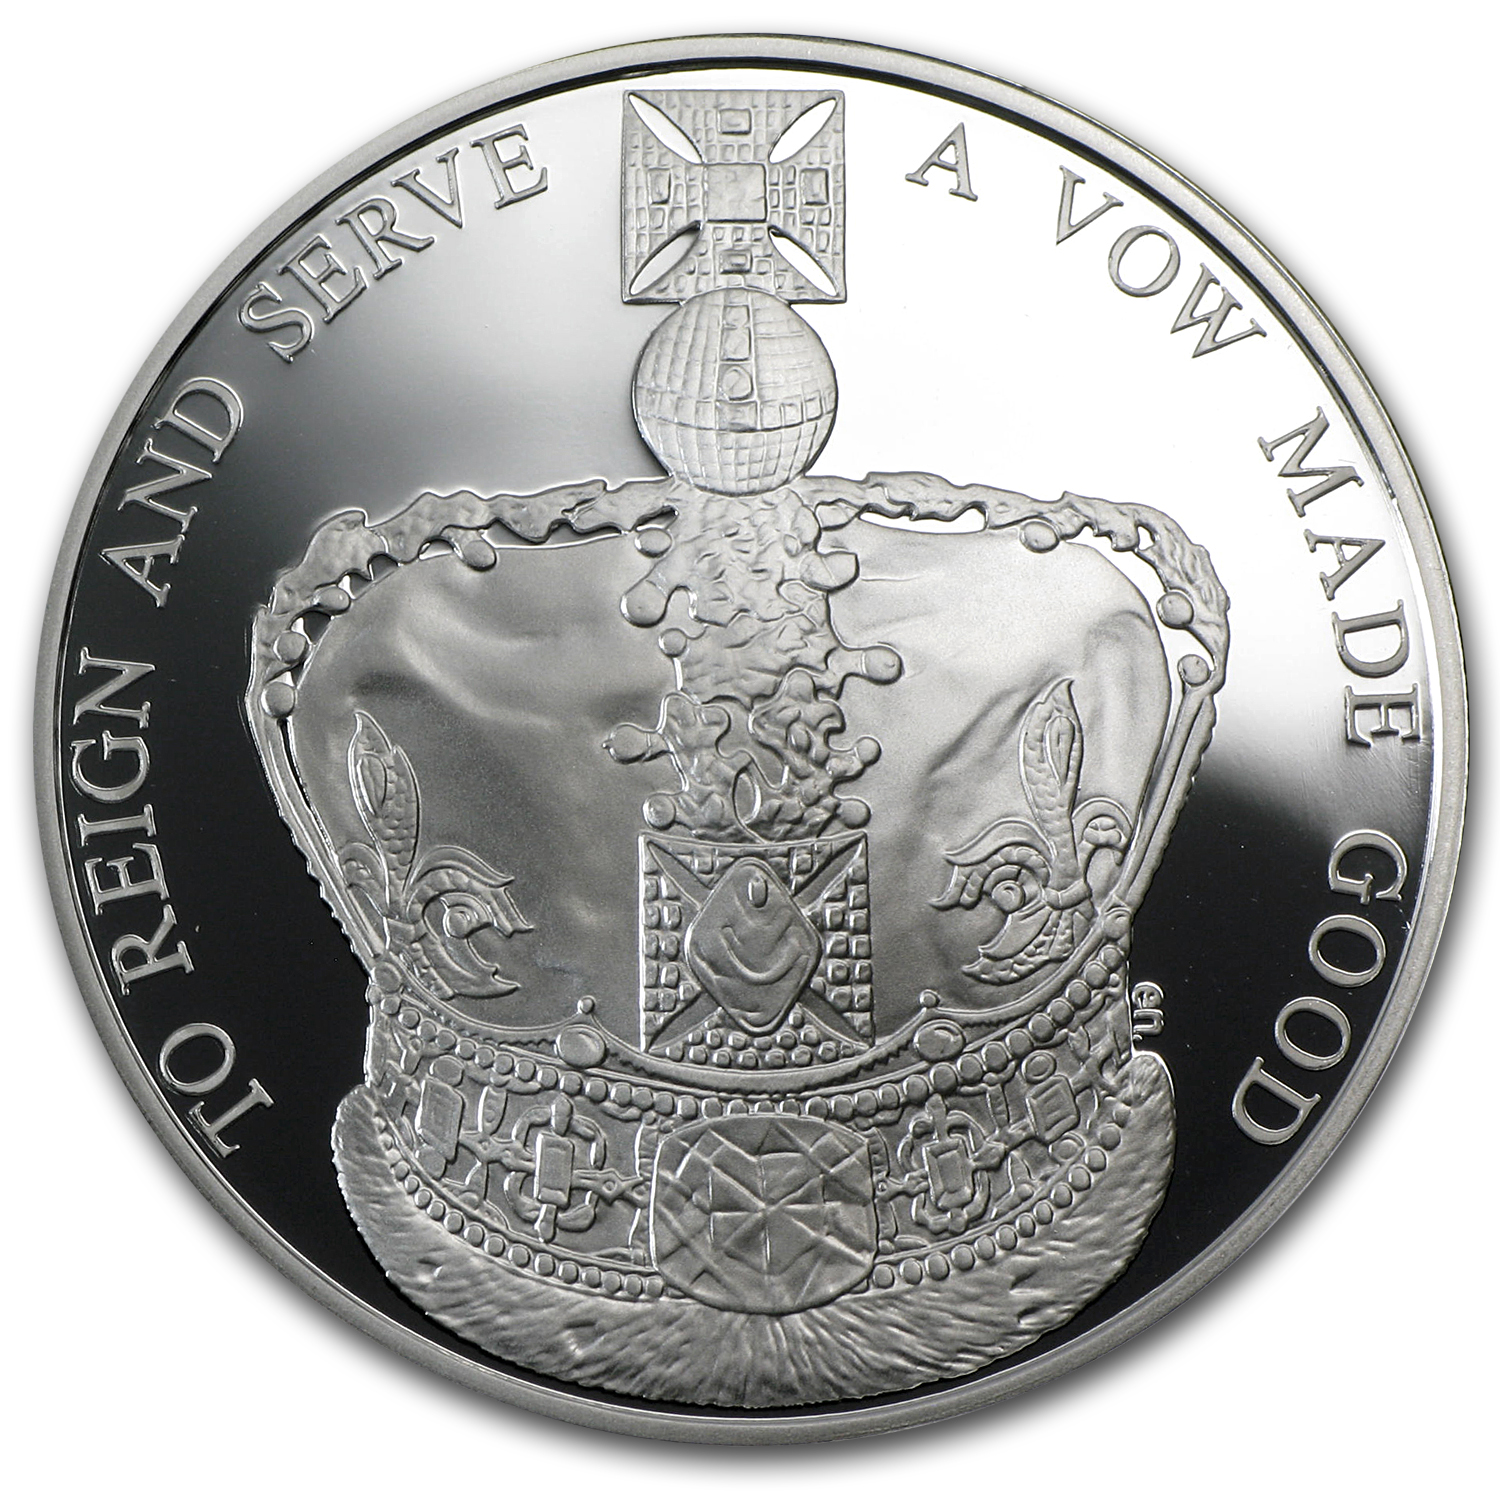 2013 Great Britain Silver £5 Queen's Coronation Anniv. Proof